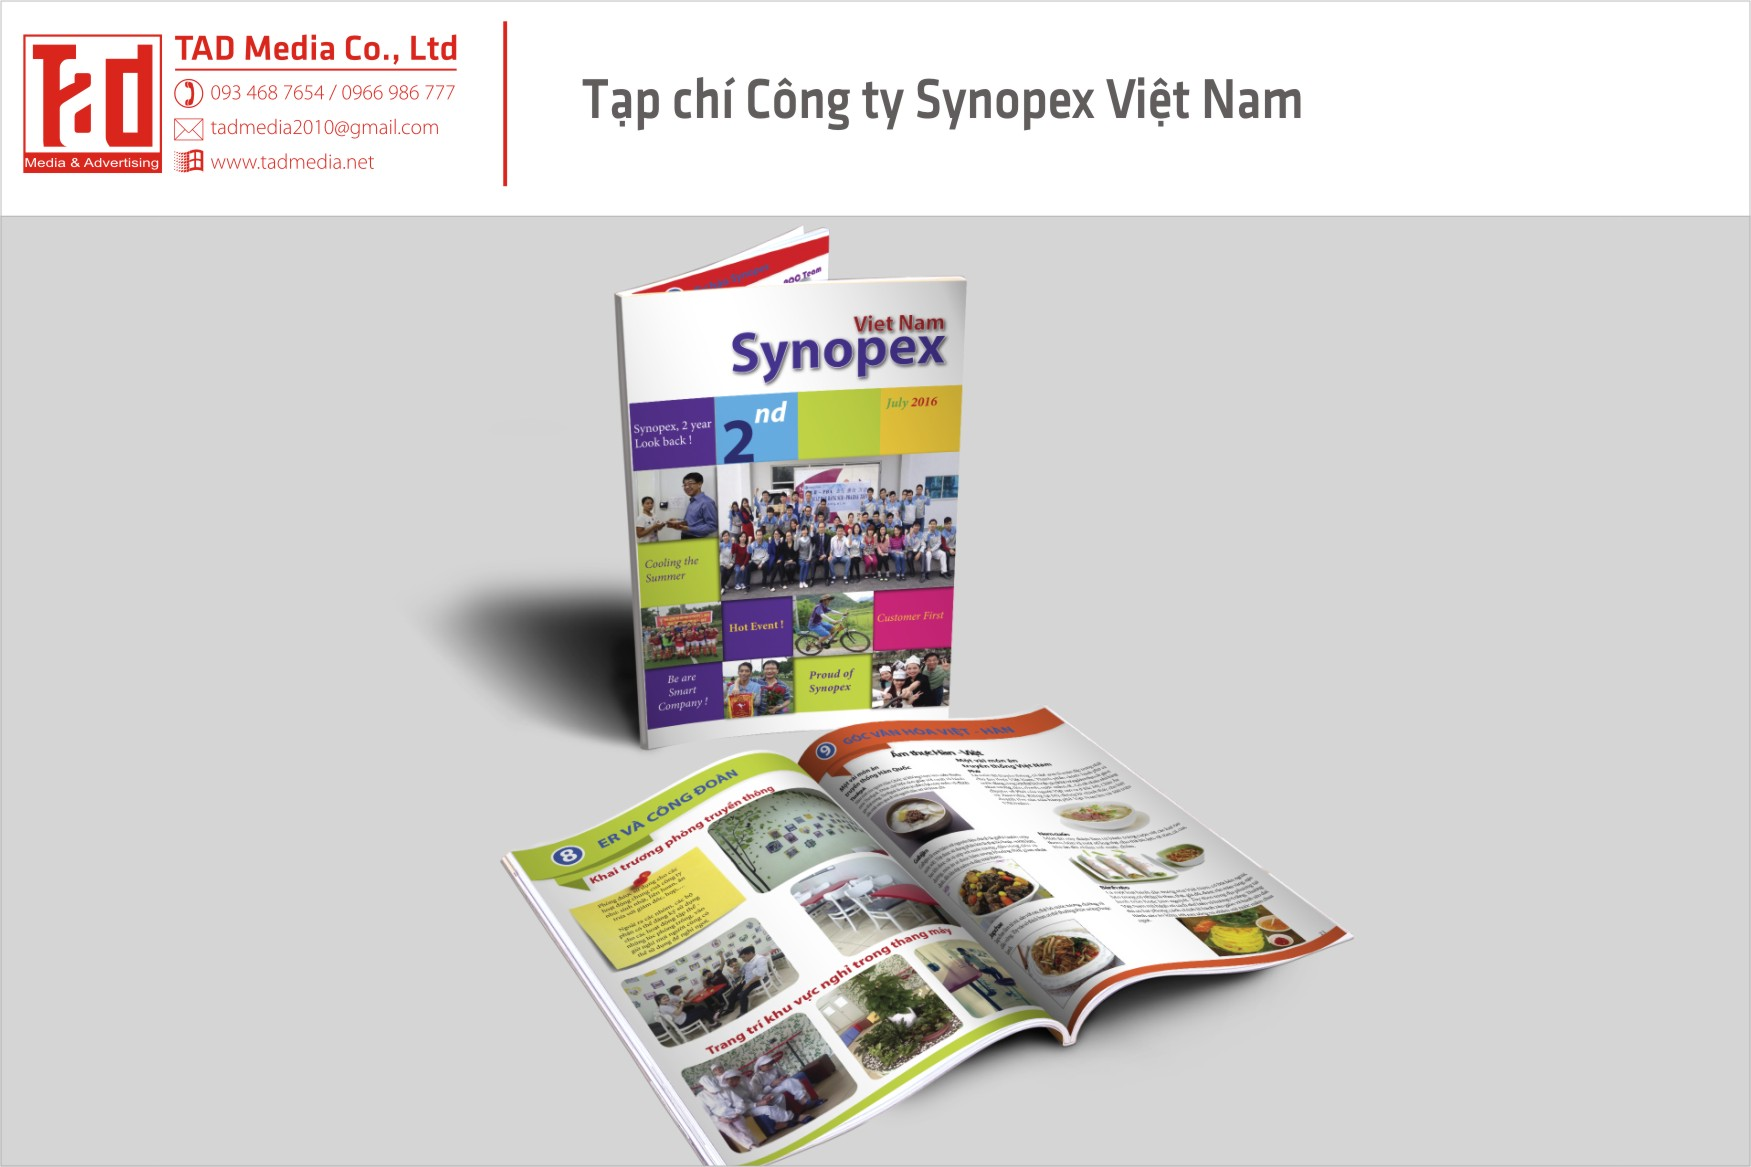 tap chi cong ty syno viet nam 75